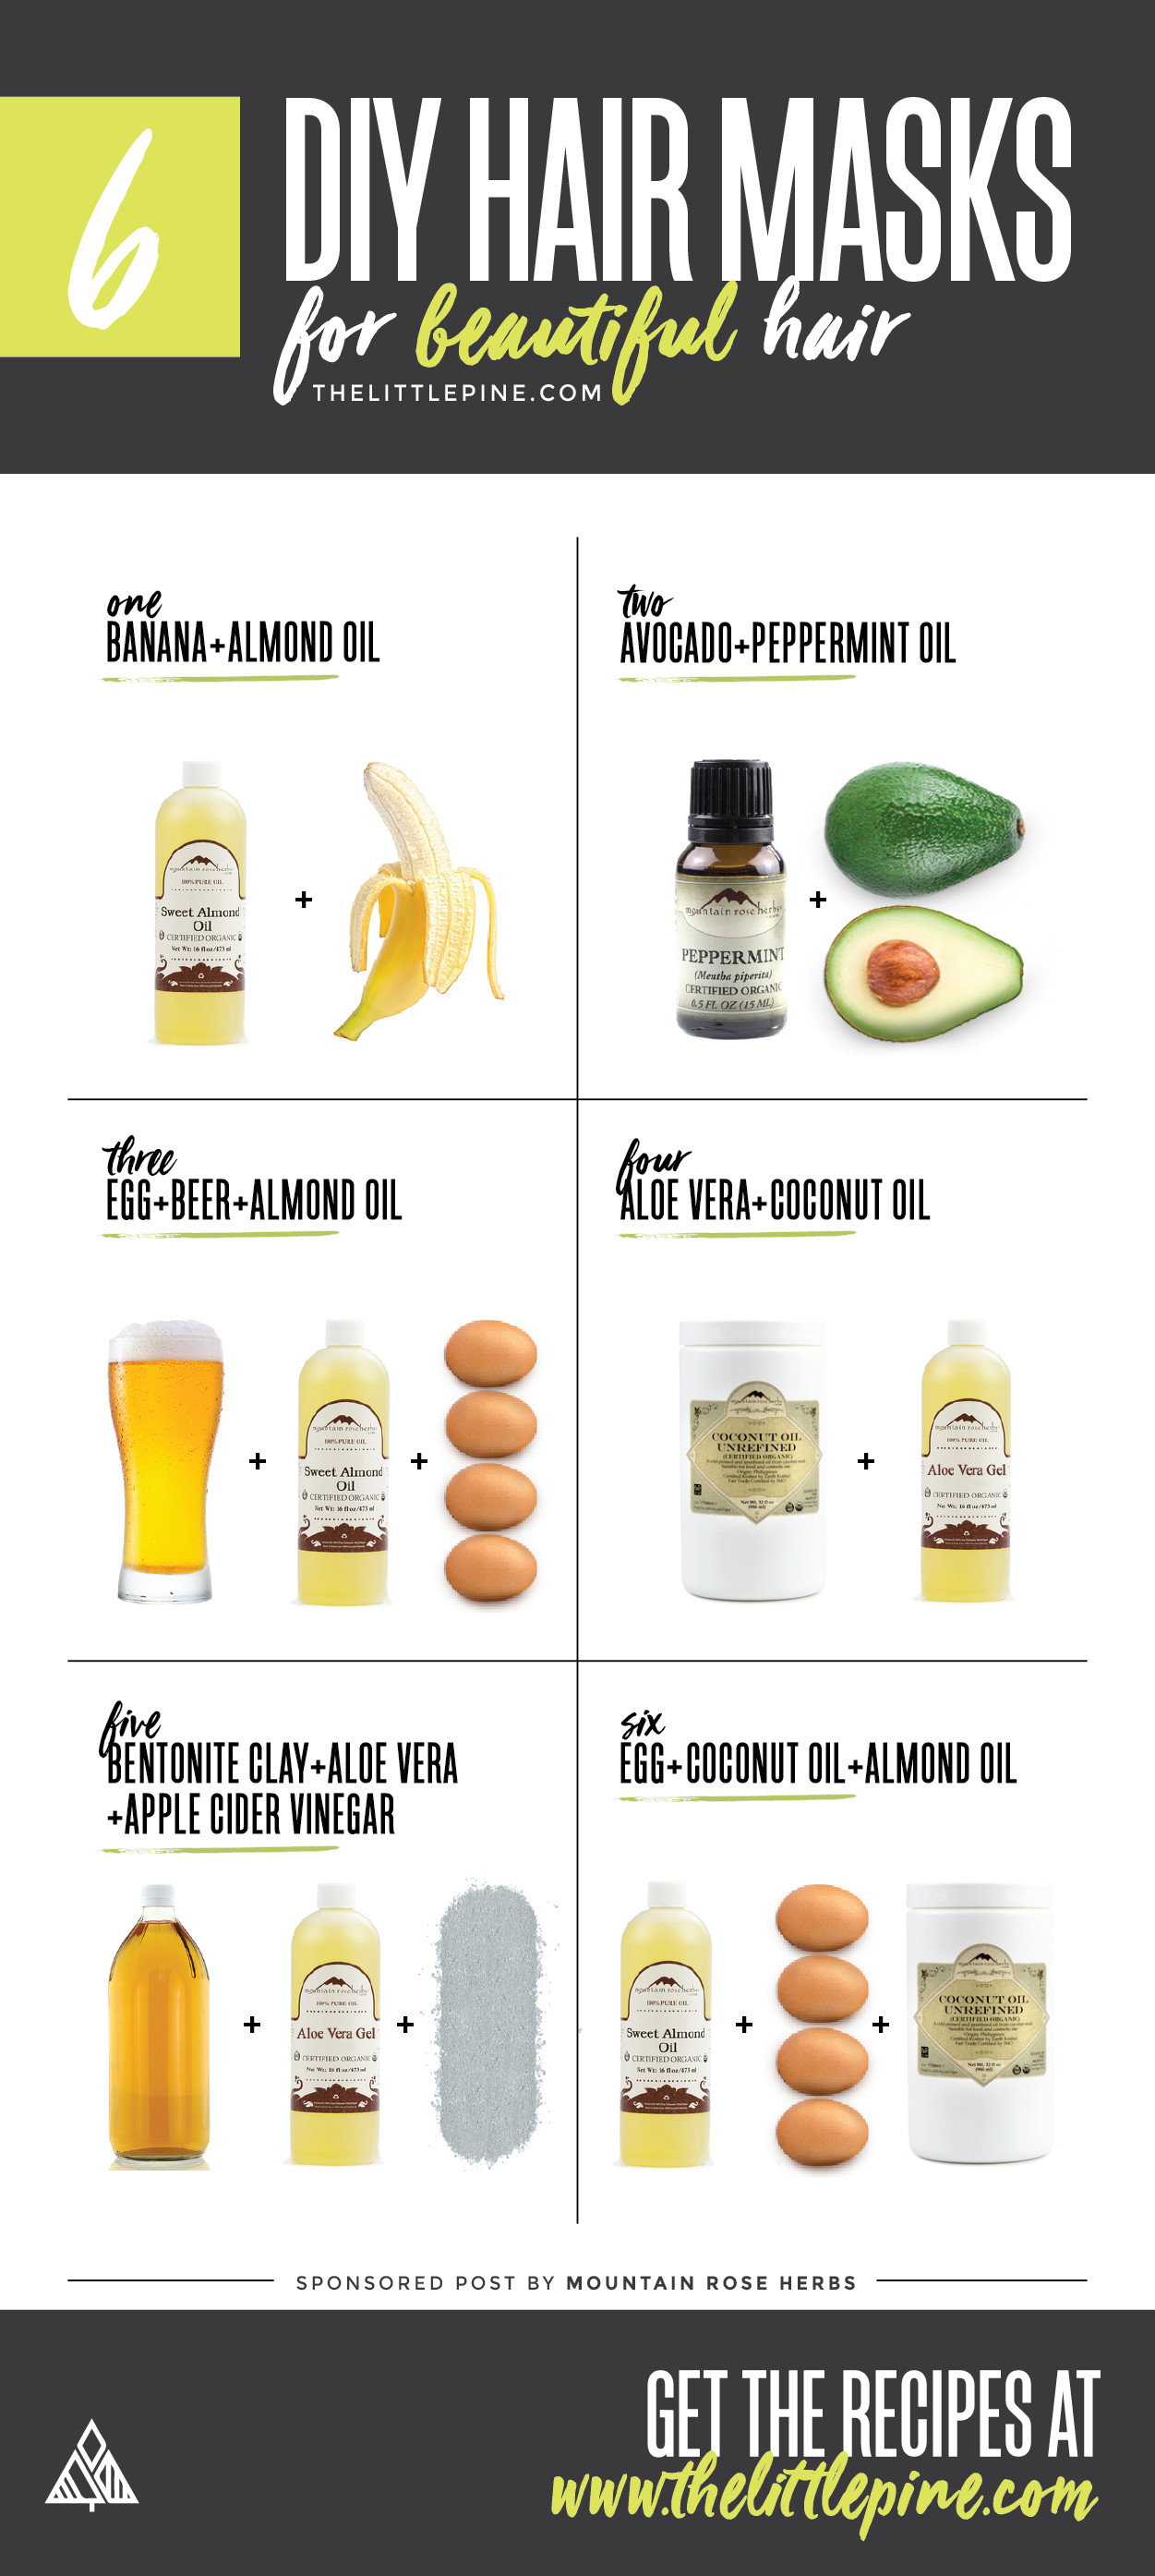 Best ideas about DIY Hair Mask . Save or Pin 6 DIY Hair Masks Little Pine Low Carb Now.